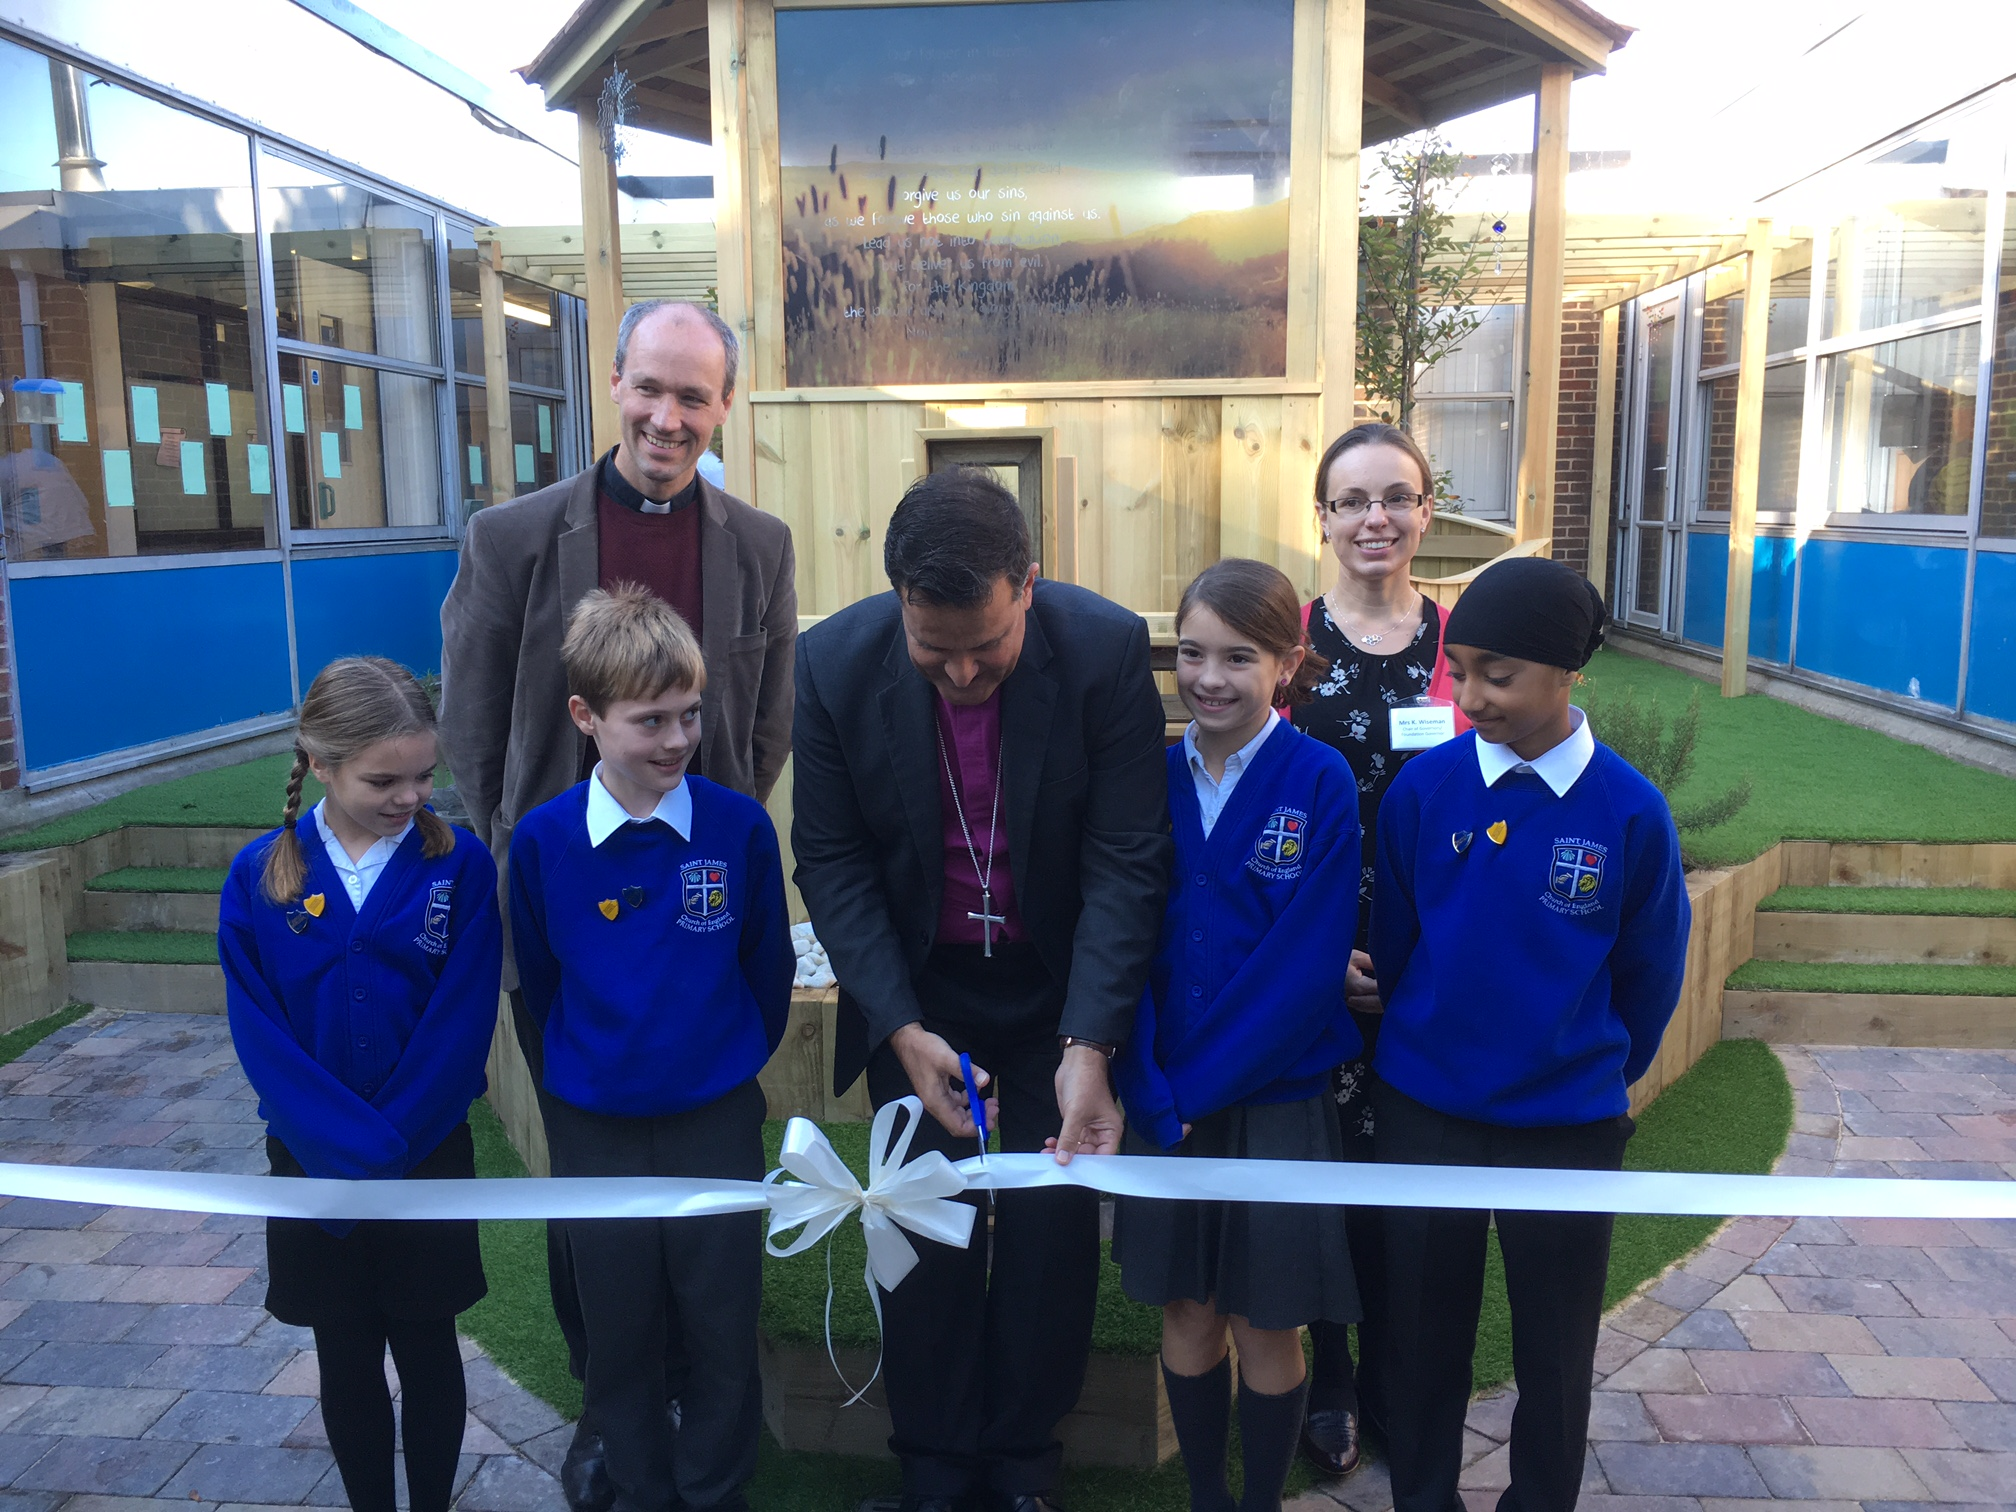 Attached photo of Bishop Jonathan opening the spiritual garden alongside Chair of Governors Karen Wiseman and Rev Thomas Wharton and pupils, from left to right, Katie, Teo, Abigail, and Camron.